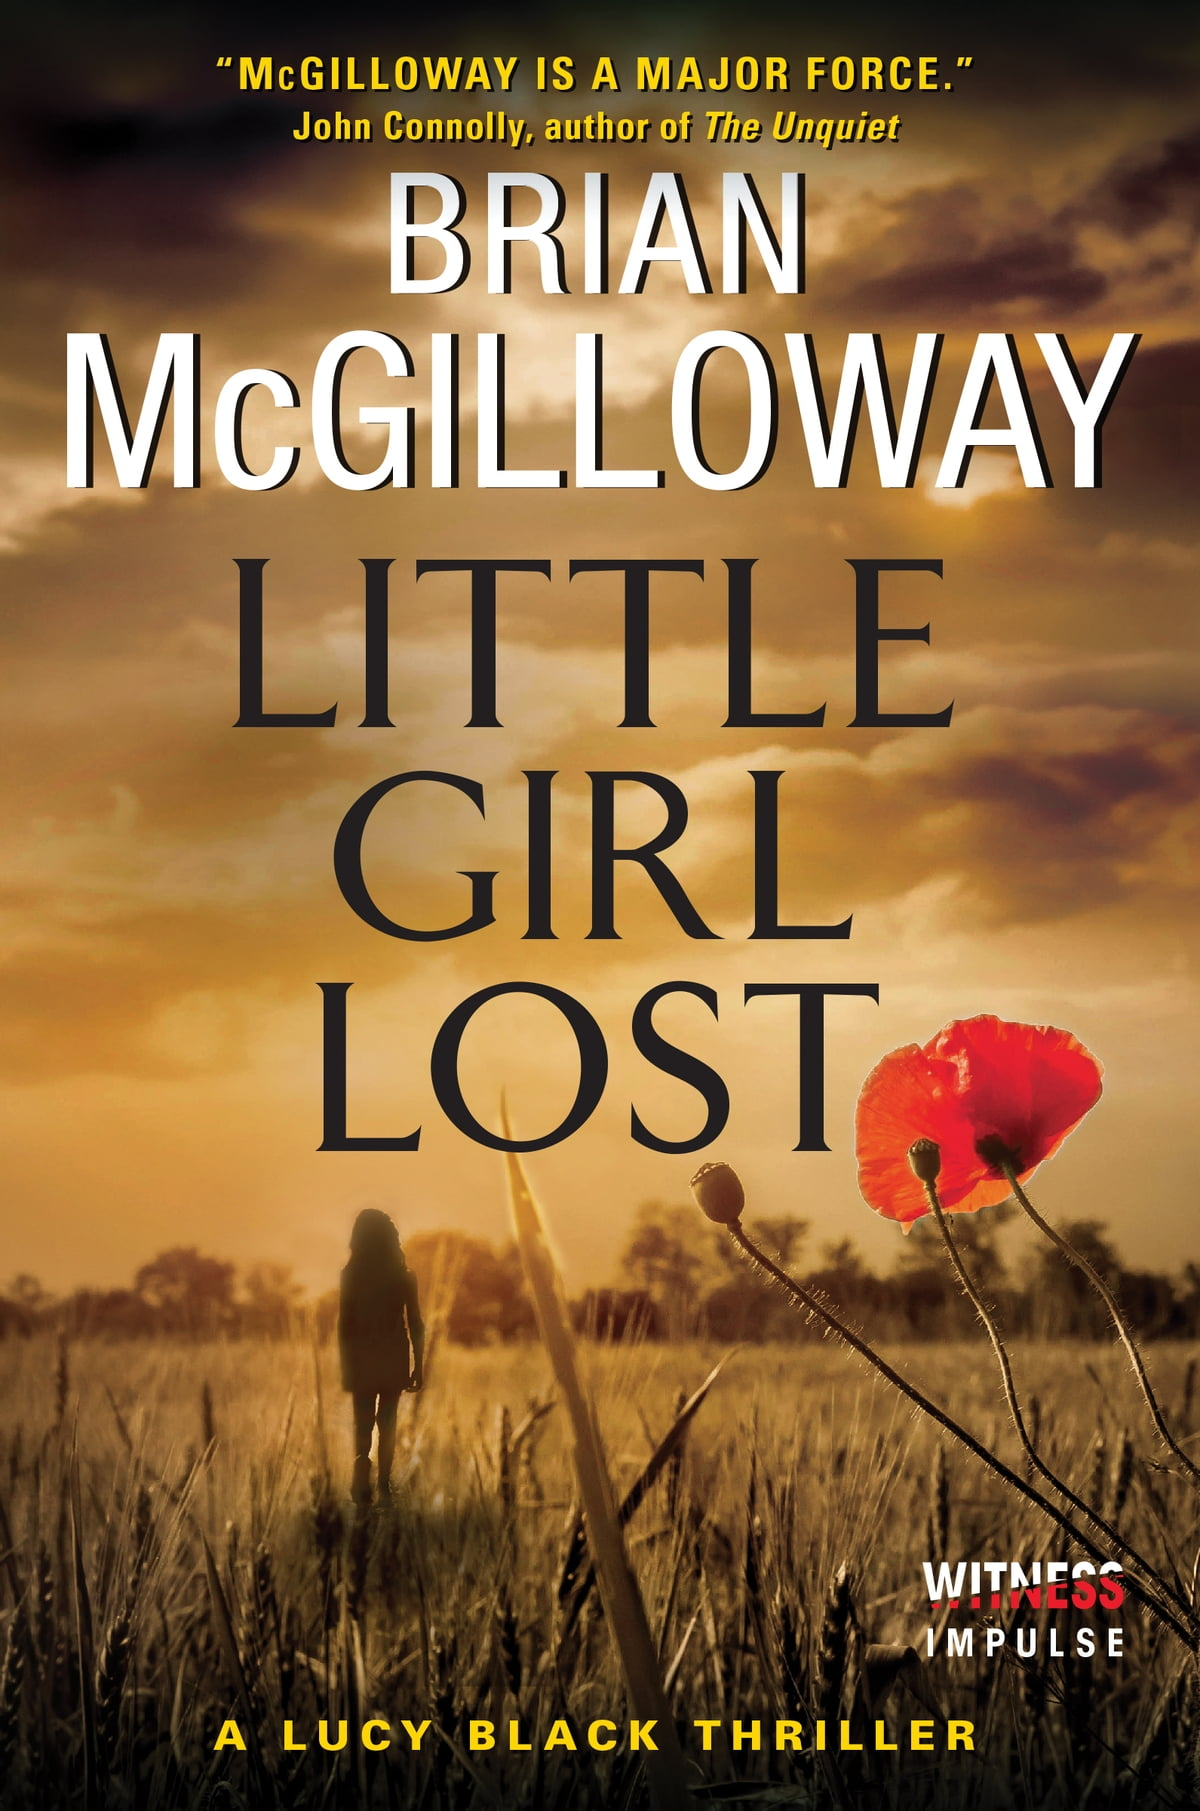 Little Girl Lost  A Lucy Black Thriller Ebook By Brian Mcgilloway